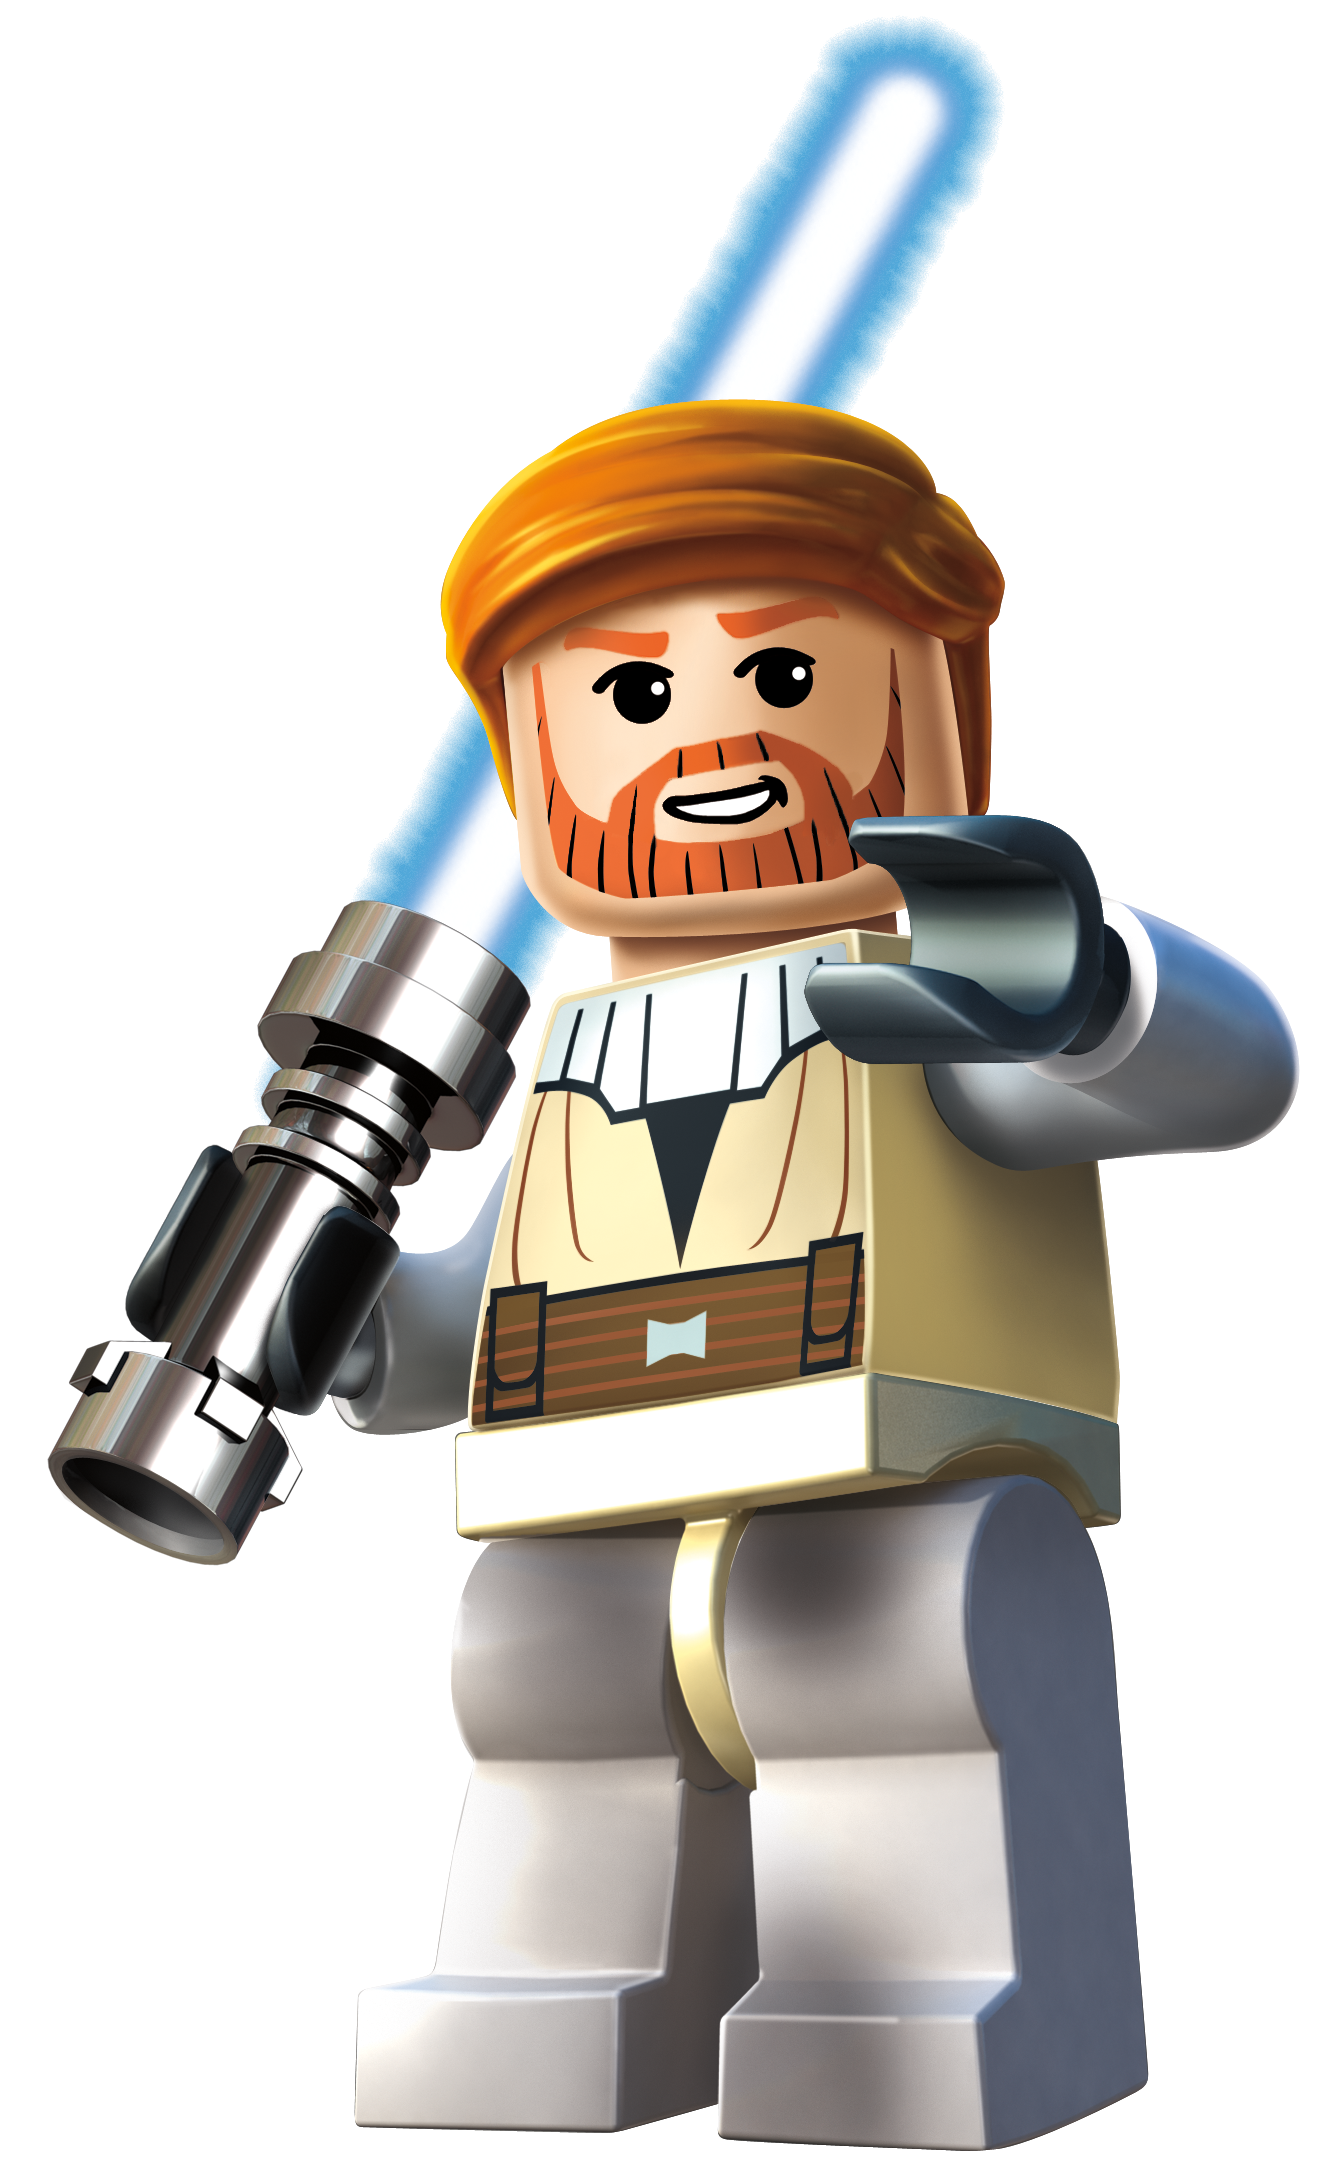 Lego star wars clipart image transparent library 28+ Collection of Star Wars Lego Clipart | High quality, free ... image transparent library